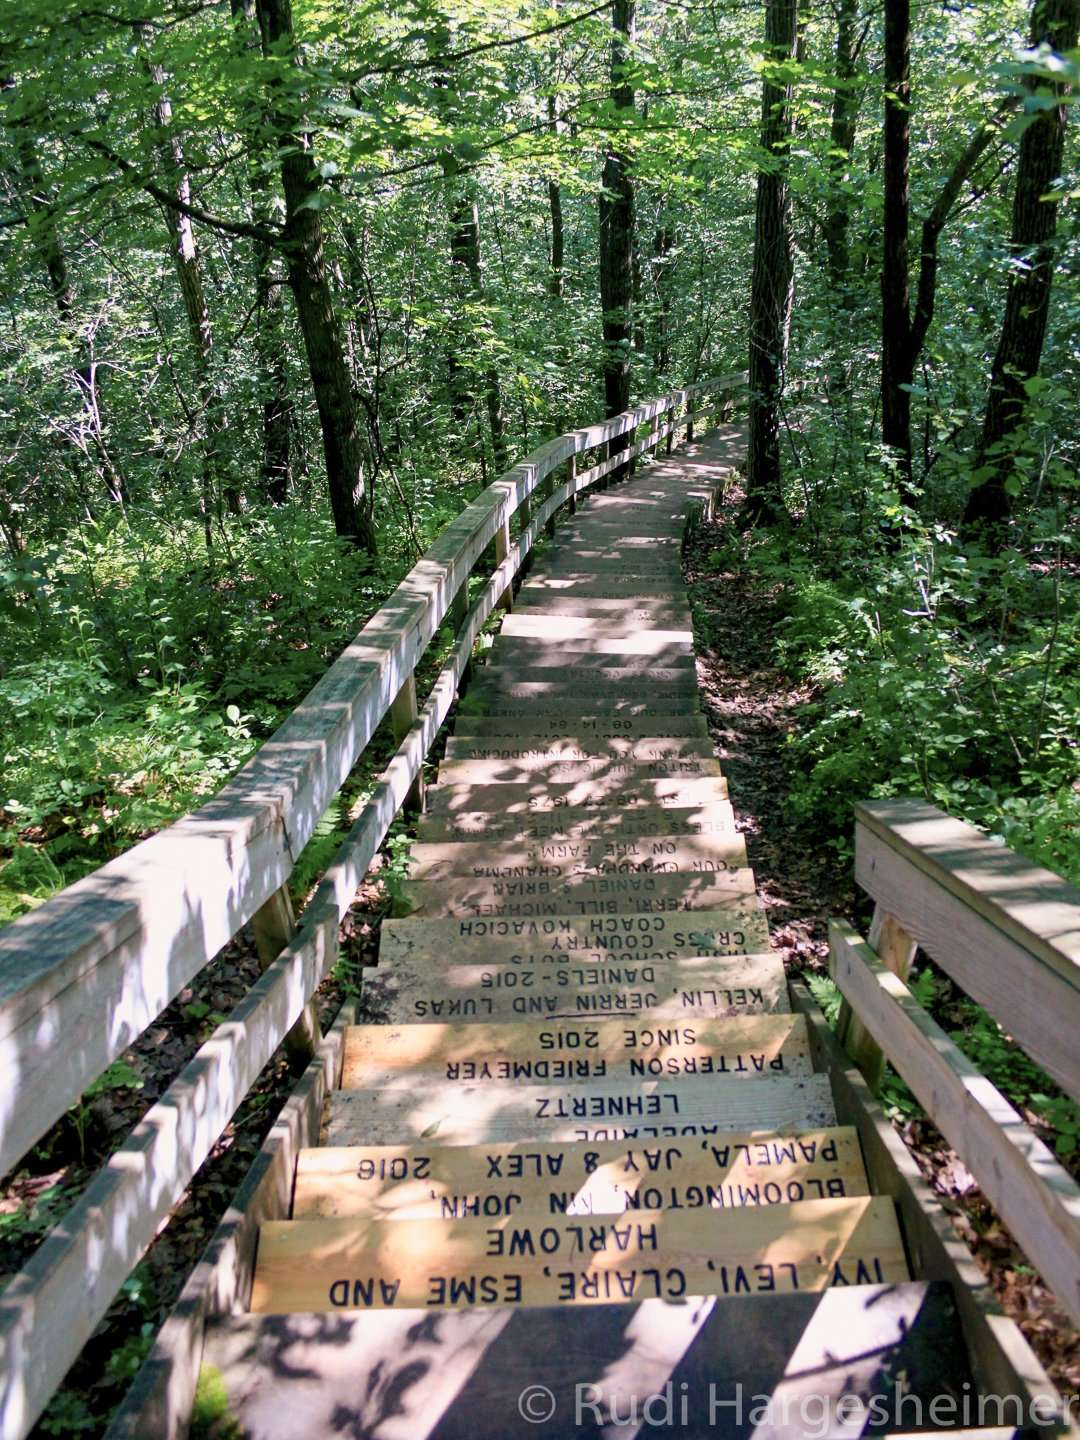 Donors' names on the repaired steps to the lookout tower at Whitewater State Park